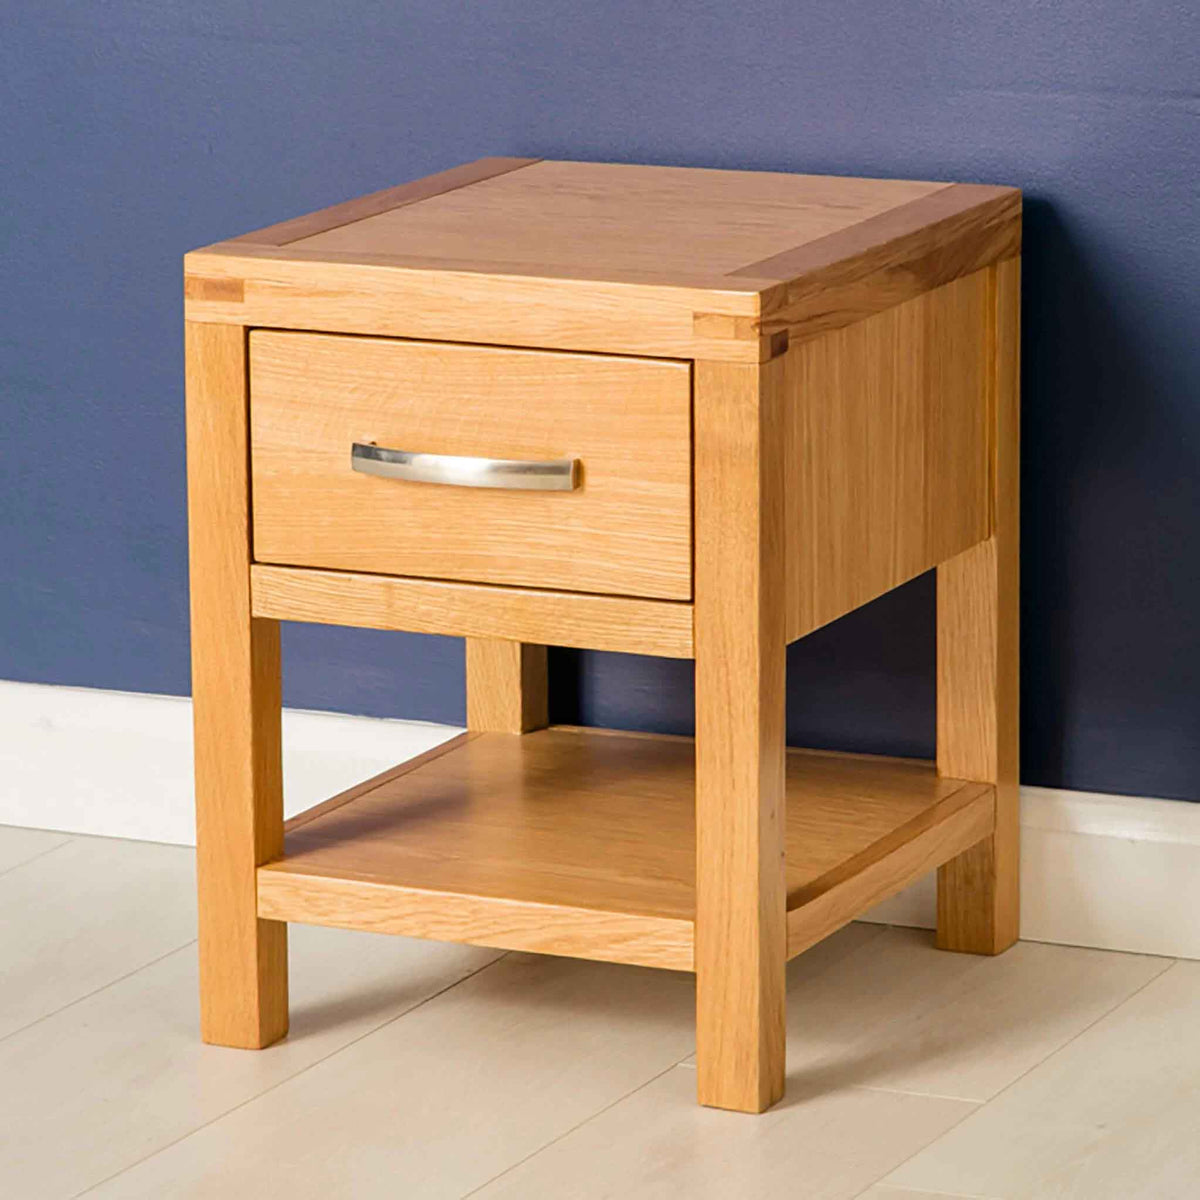 Side view of the Abbey Light Oak Wooden Lamp Table by Roseland Furniture